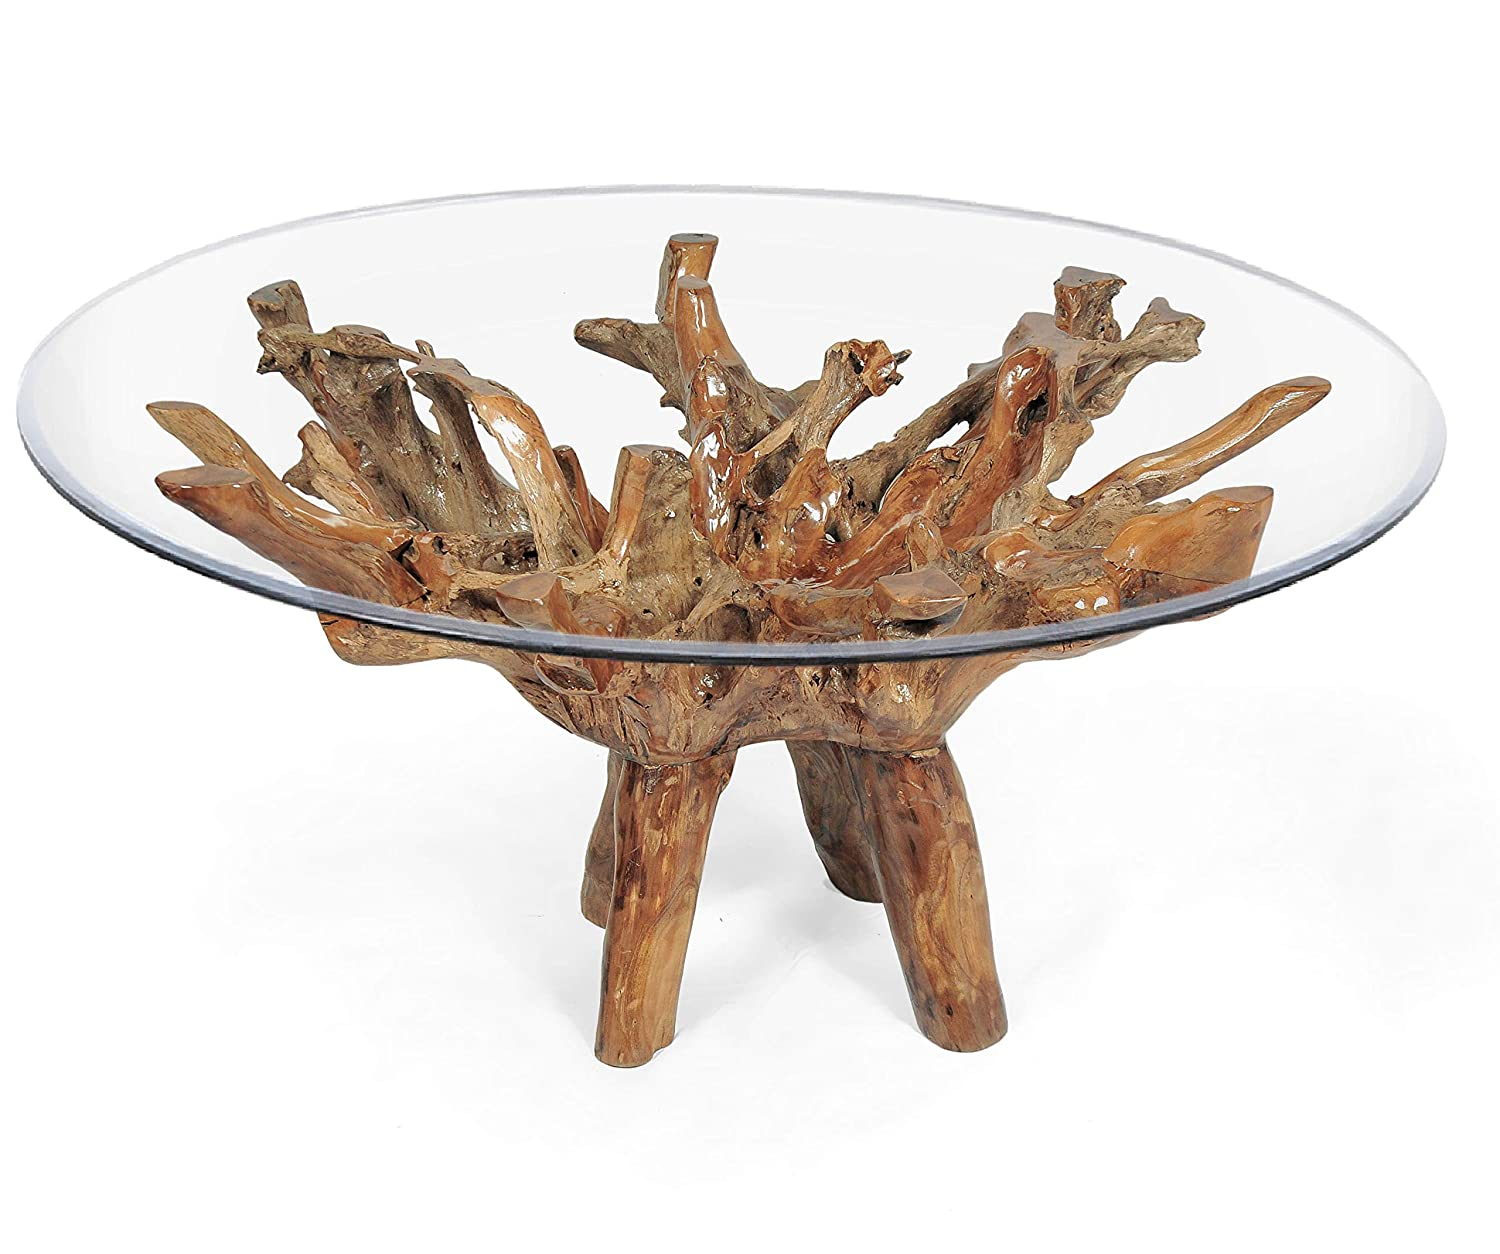 Stupendous Amazon Com Teak Root Dining Table For 70 Inch Glass Top Beatyapartments Chair Design Images Beatyapartmentscom